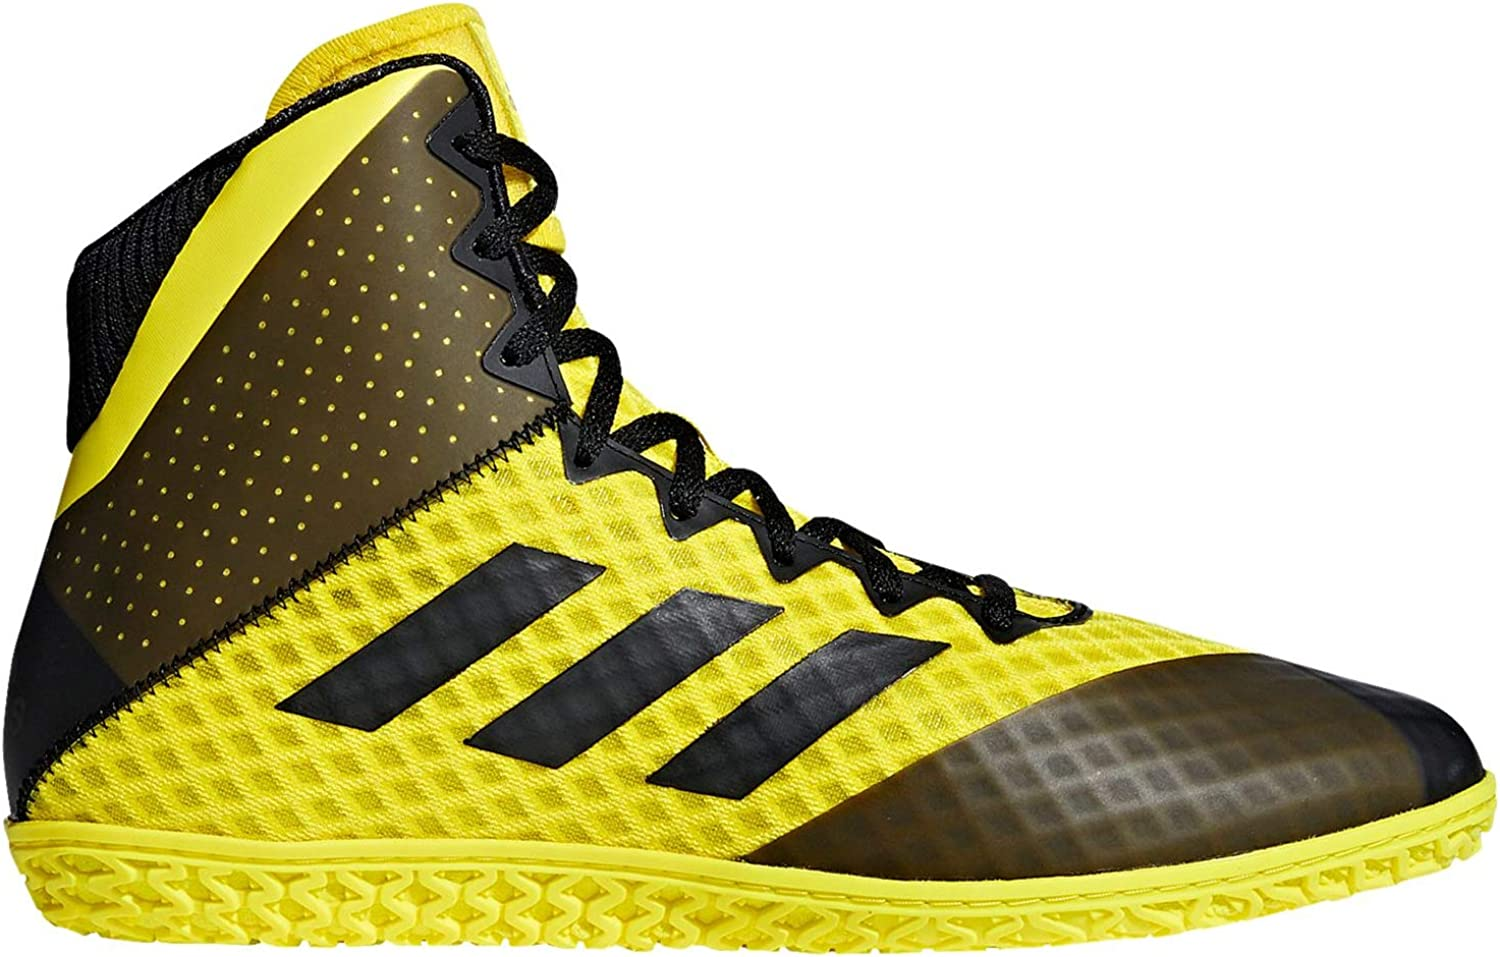 Adidas Mat Wizard 4 Wrestling shoes - Mens